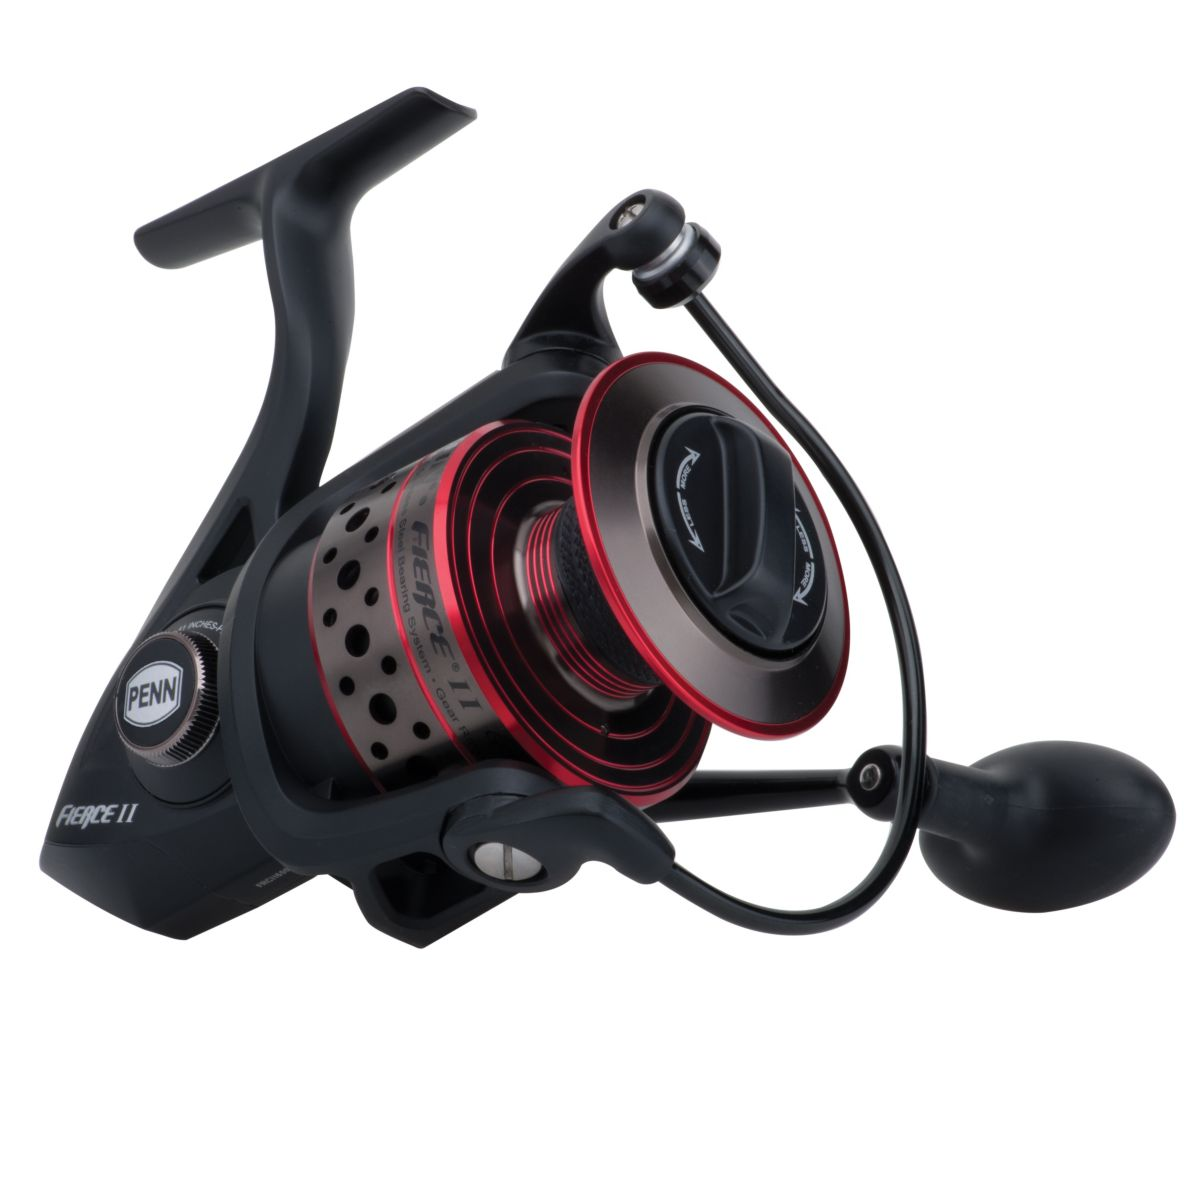 Penn Fierce II FRCII2500 Spinning Reel